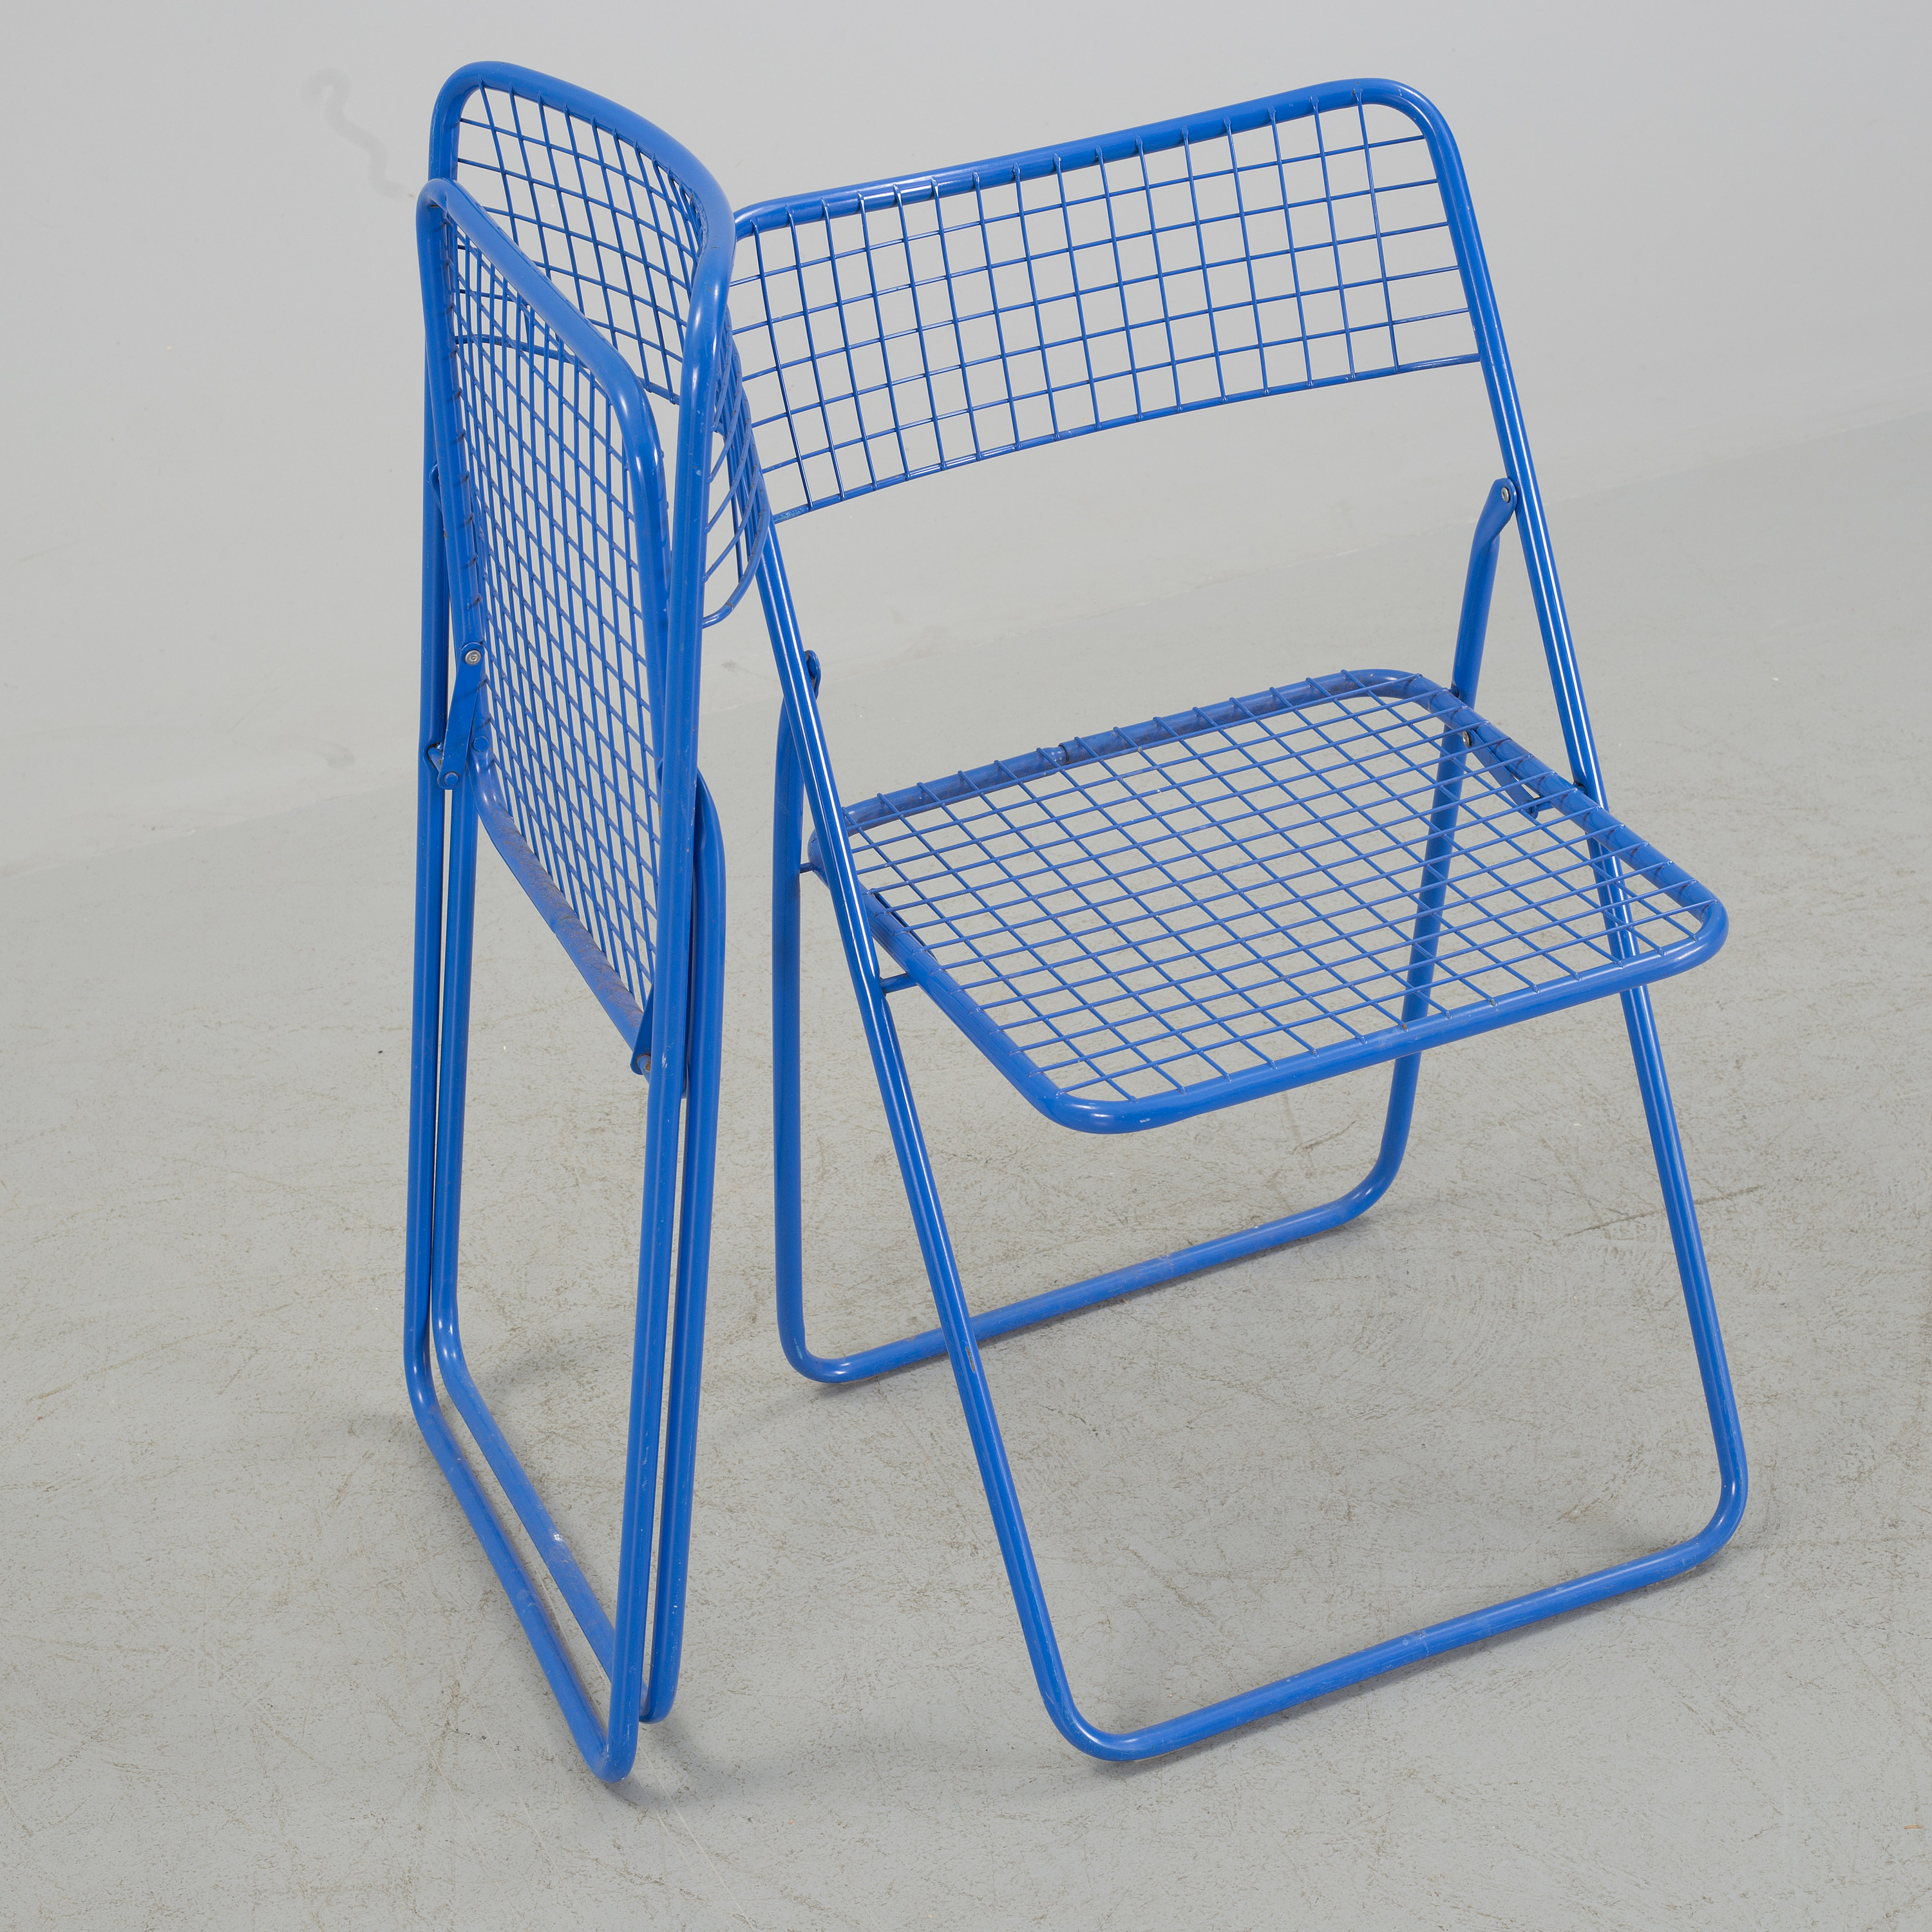 Pleasant Nils Gammelgaard Five Ted Net Metal Folding Chairs From Squirreltailoven Fun Painted Chair Ideas Images Squirreltailovenorg